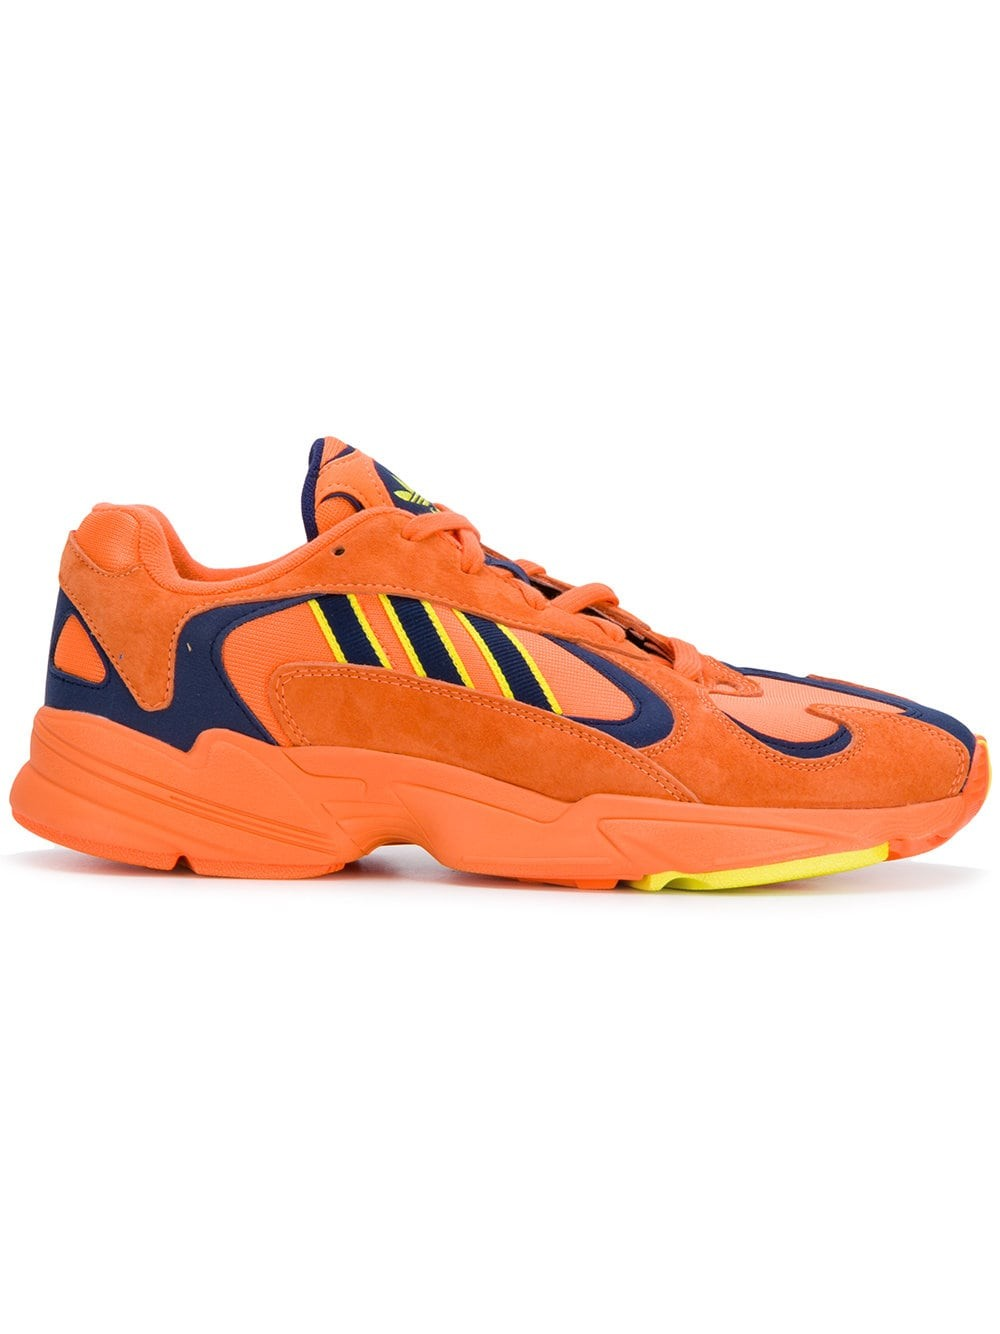 "Adidas YUNG-1 Orange Jaune Navy ""Goku"" B37613"